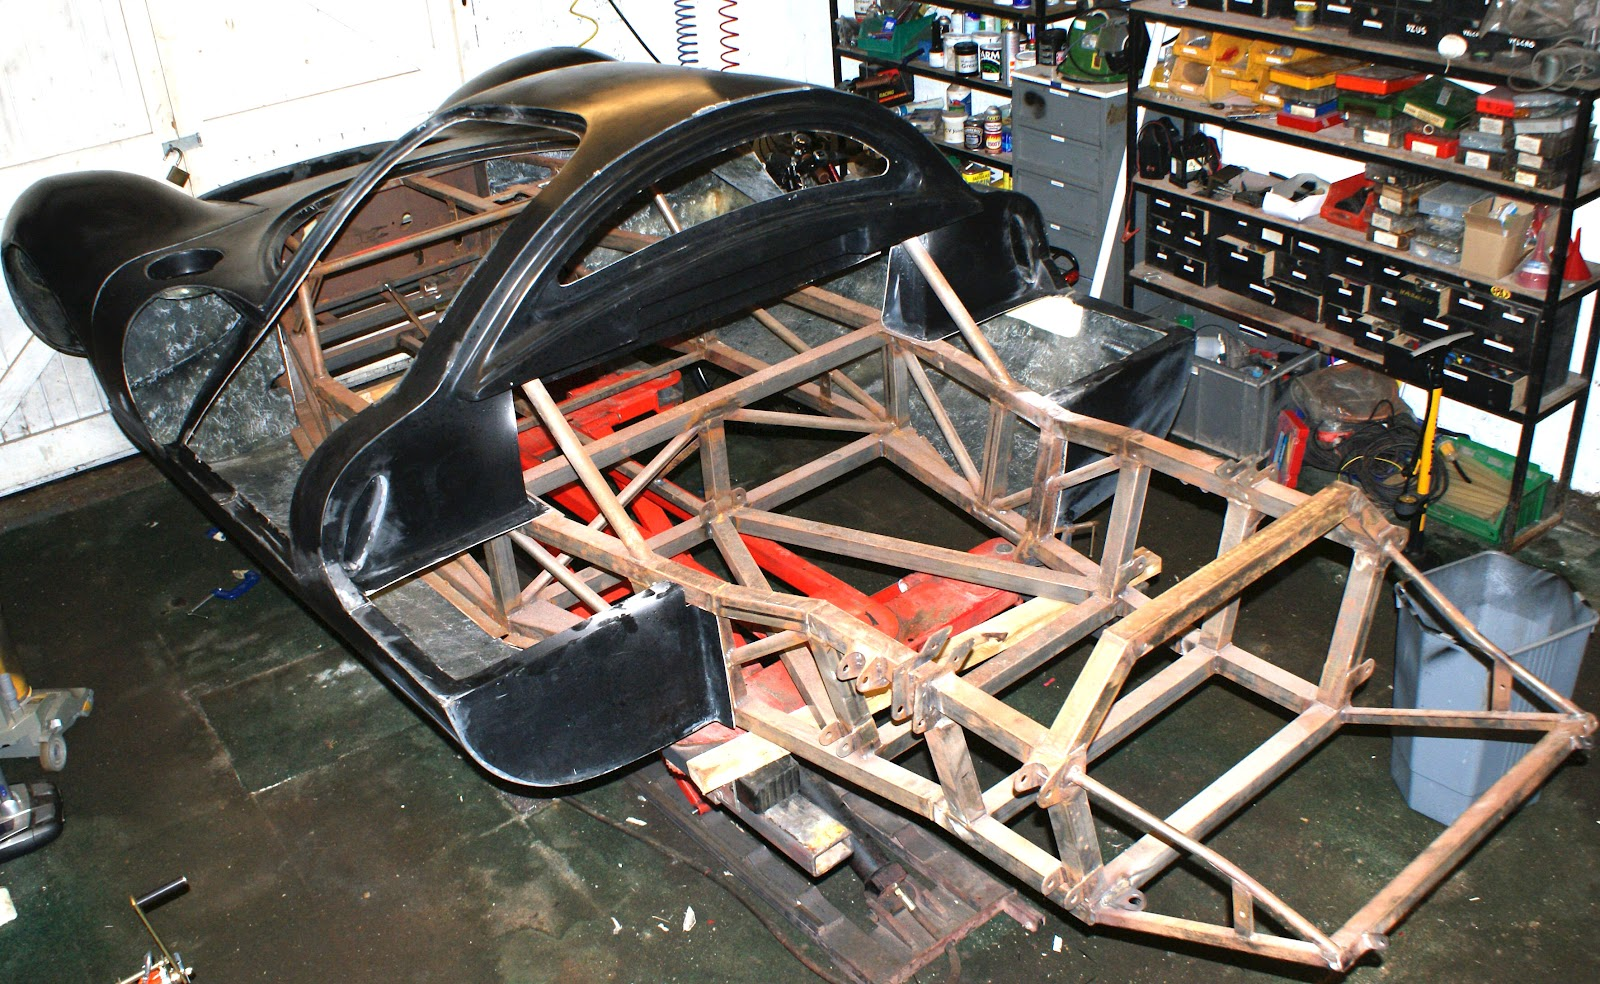 Cbs Ferrari P4 Build First Post Rover Wiring Diagram Every Mk4 We Manufactured Was Fitted With The Owners Choice Of Engine From Renault V6 To V8 Chevy Lamborghini V12 And